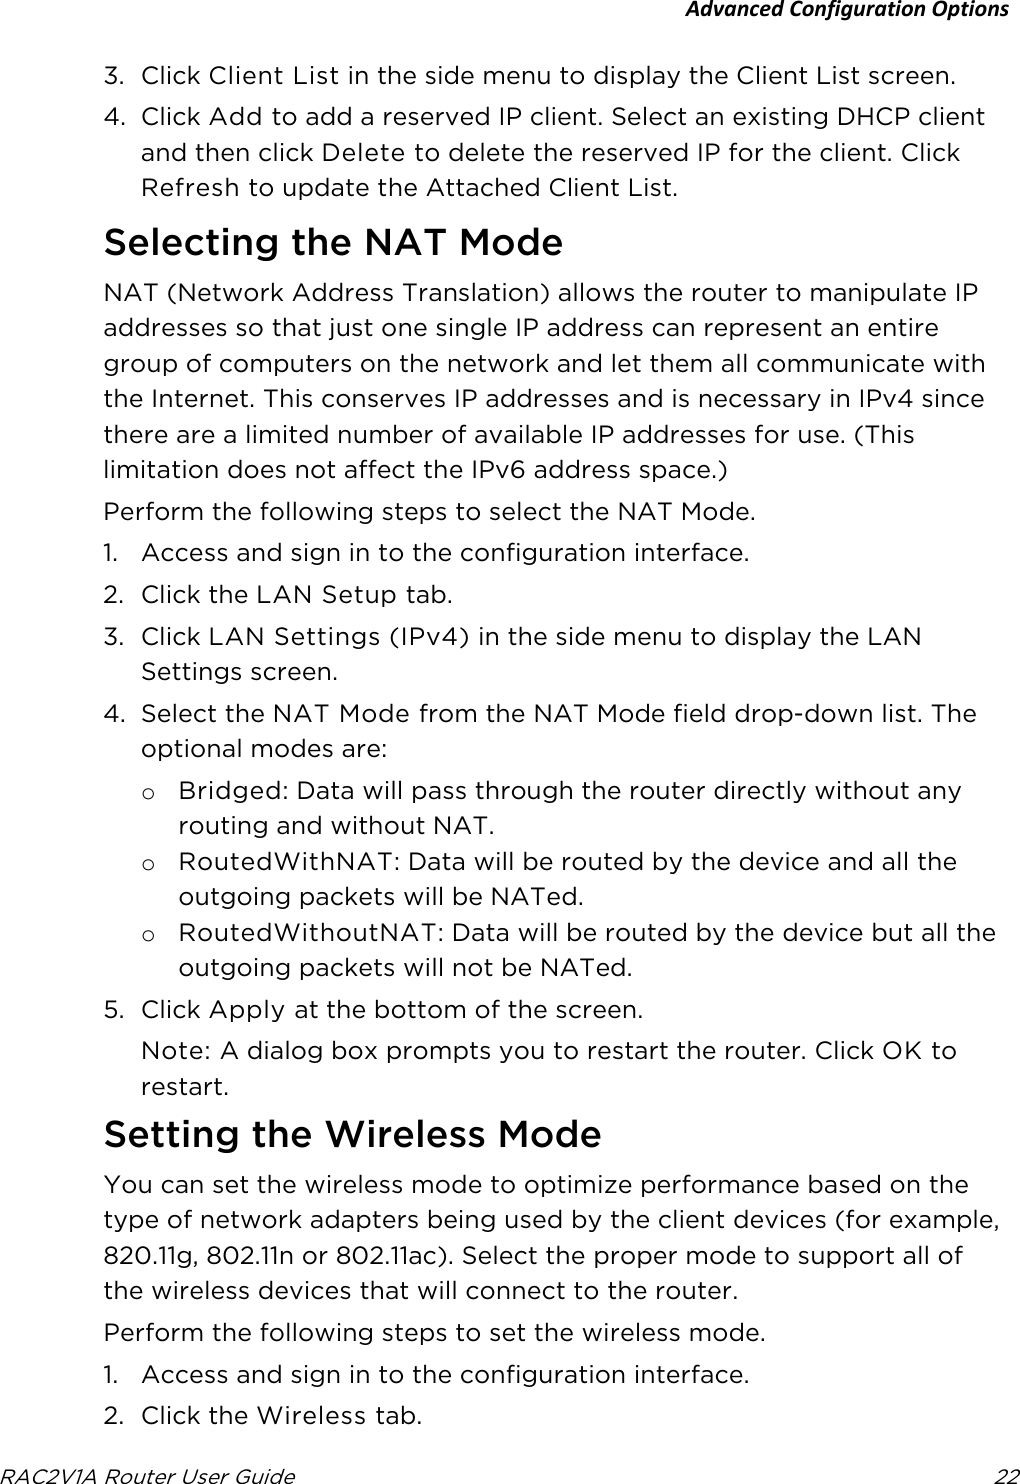 ARRIS TR4400 802 11ac Wireless Router User Manual User Guide